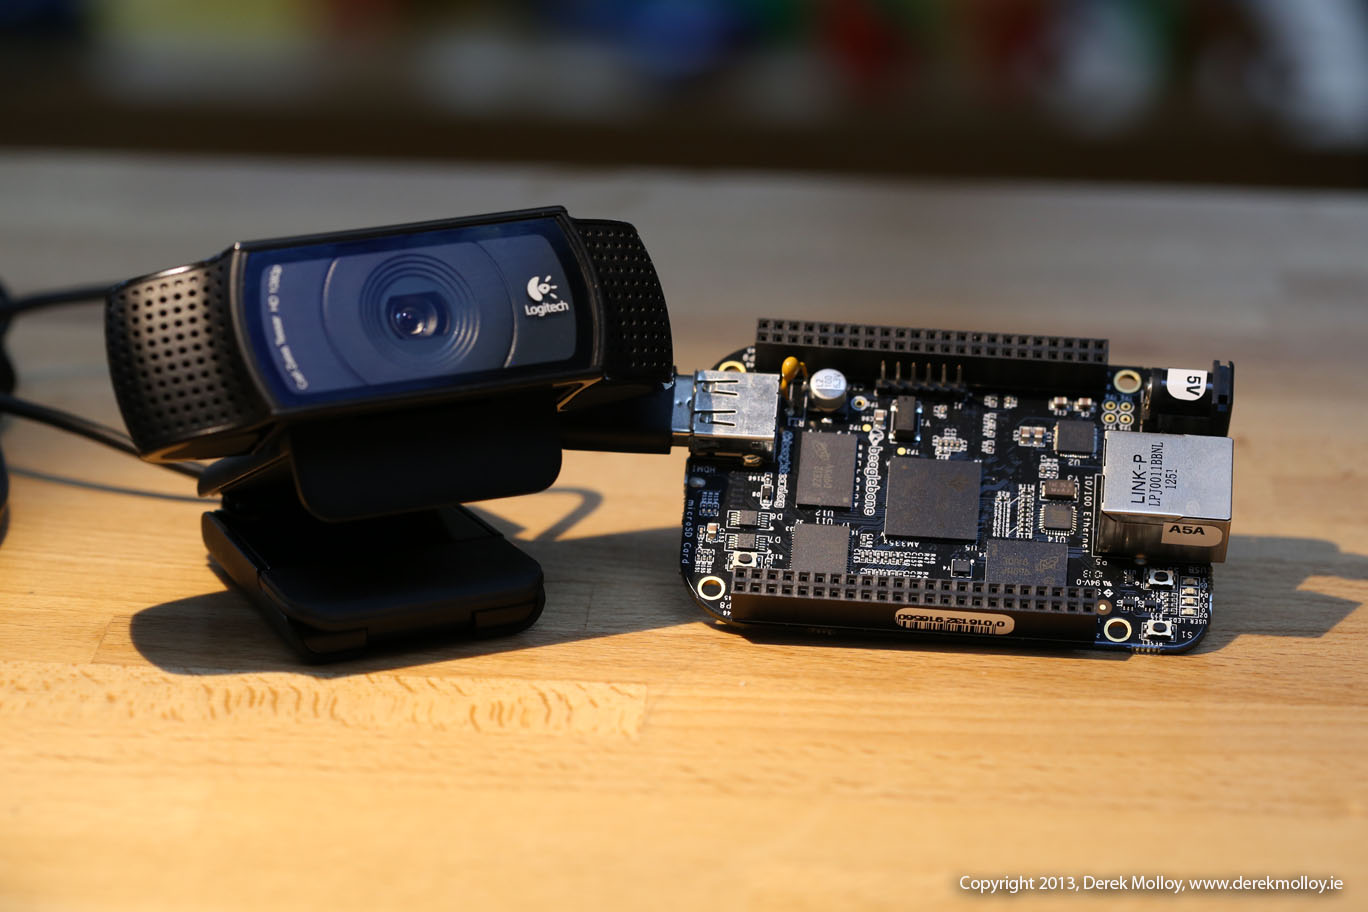 Capturing Images and Video on the Beaglebone | derekmolloy ie